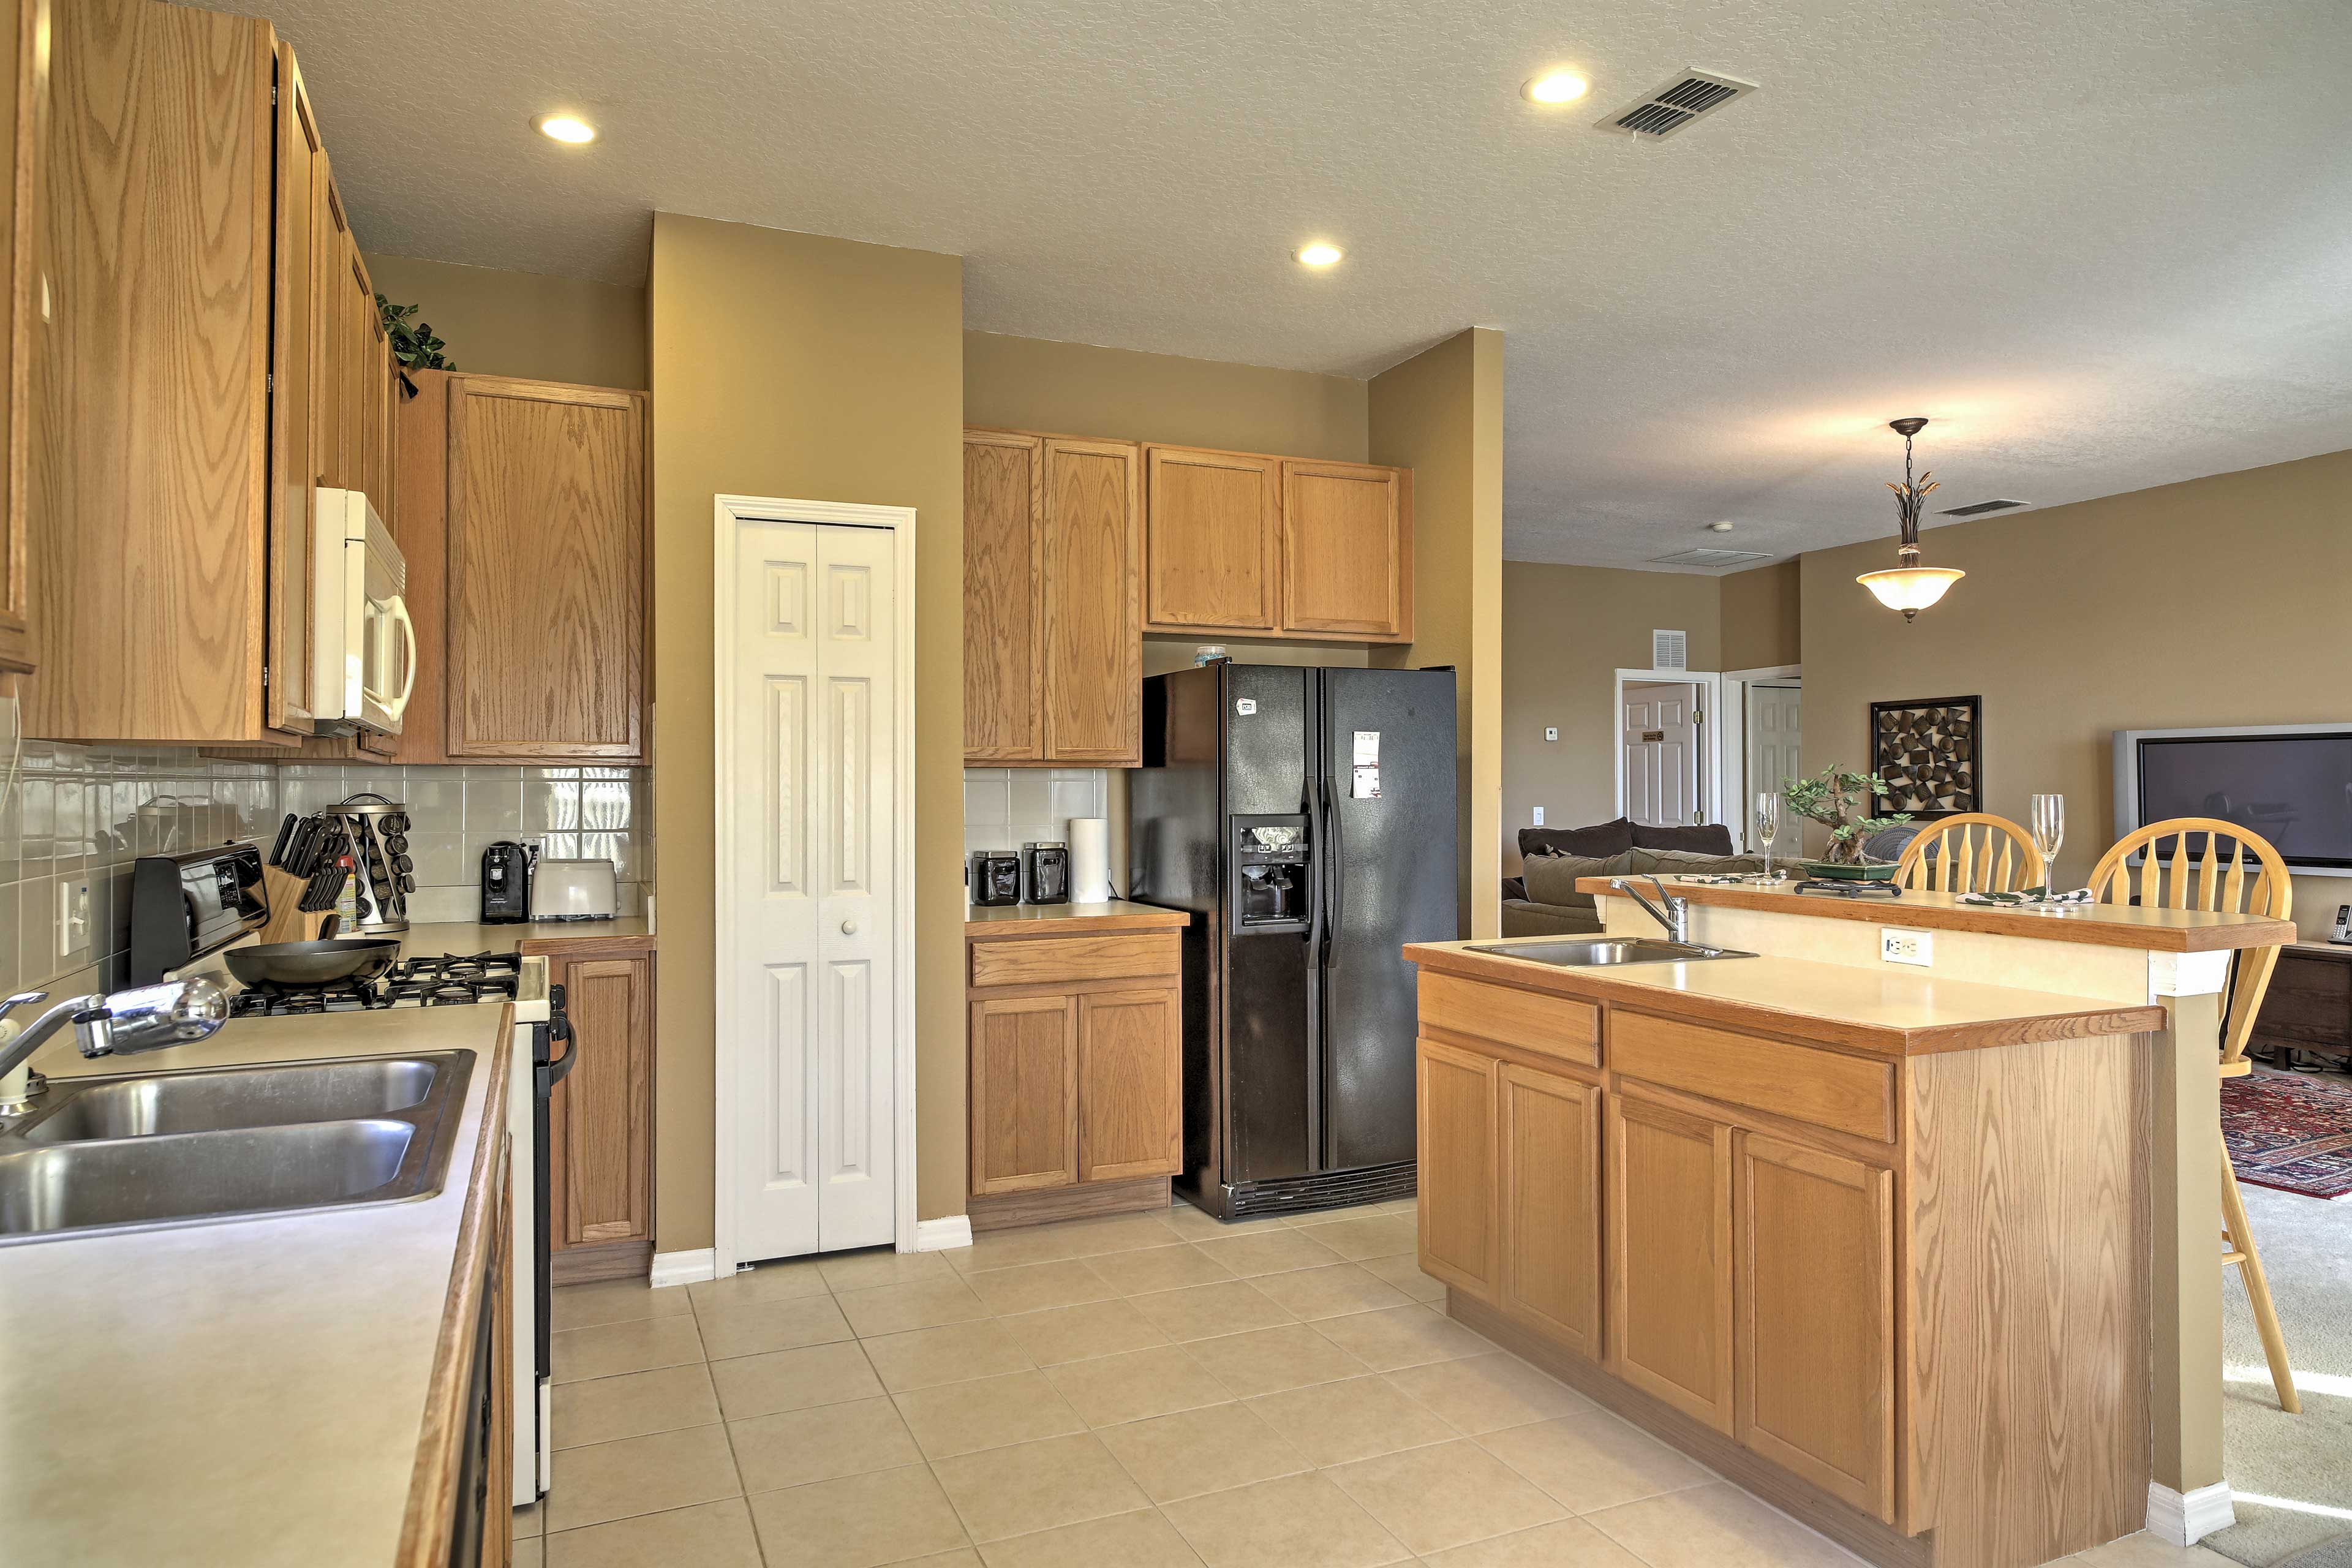 Whip up delicious home-cooked meals in the fully equipped kitchen.